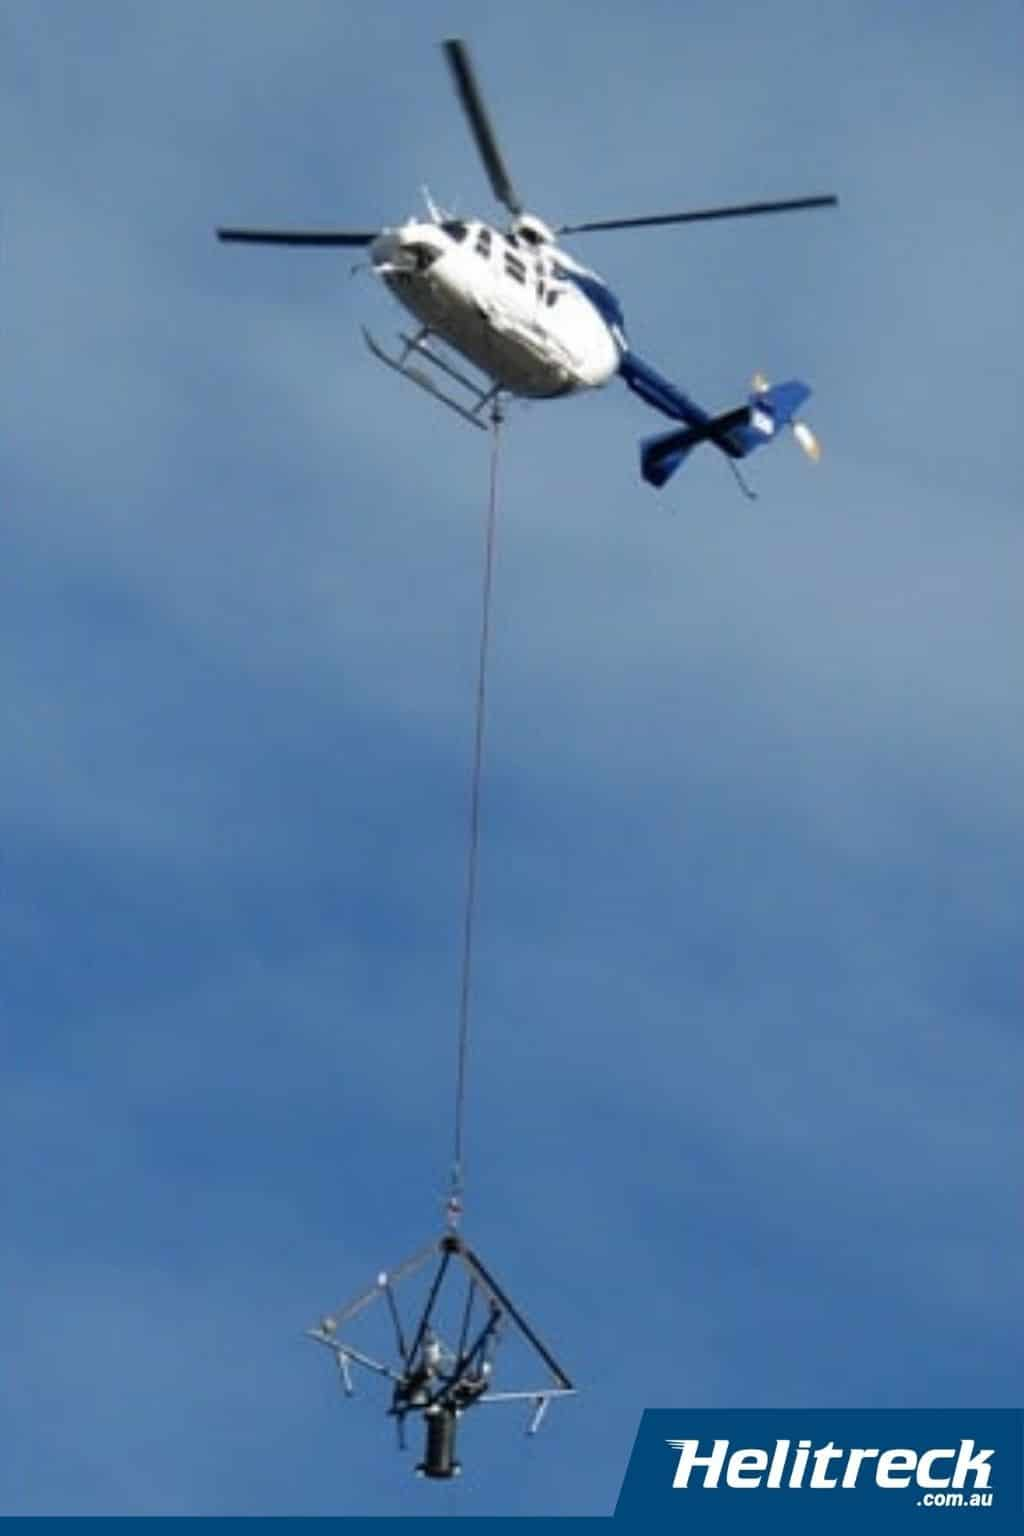 Helicopter_Lifting